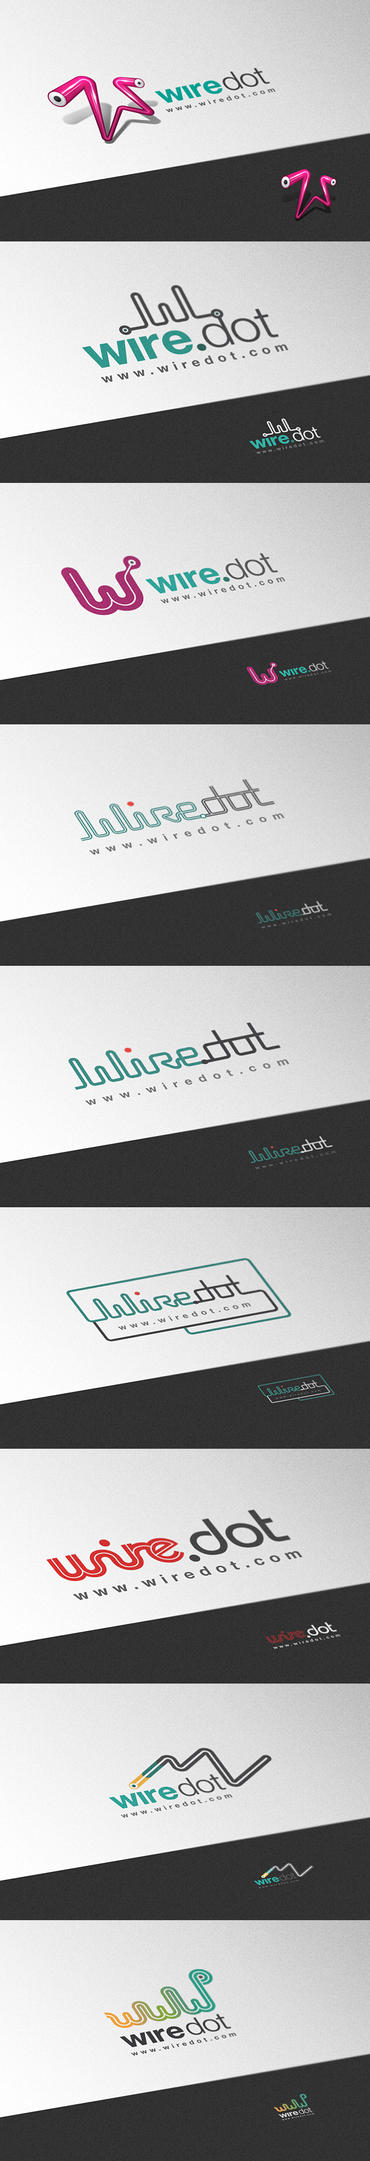 Wire-dot Logo 9versions by pho3nix-bf